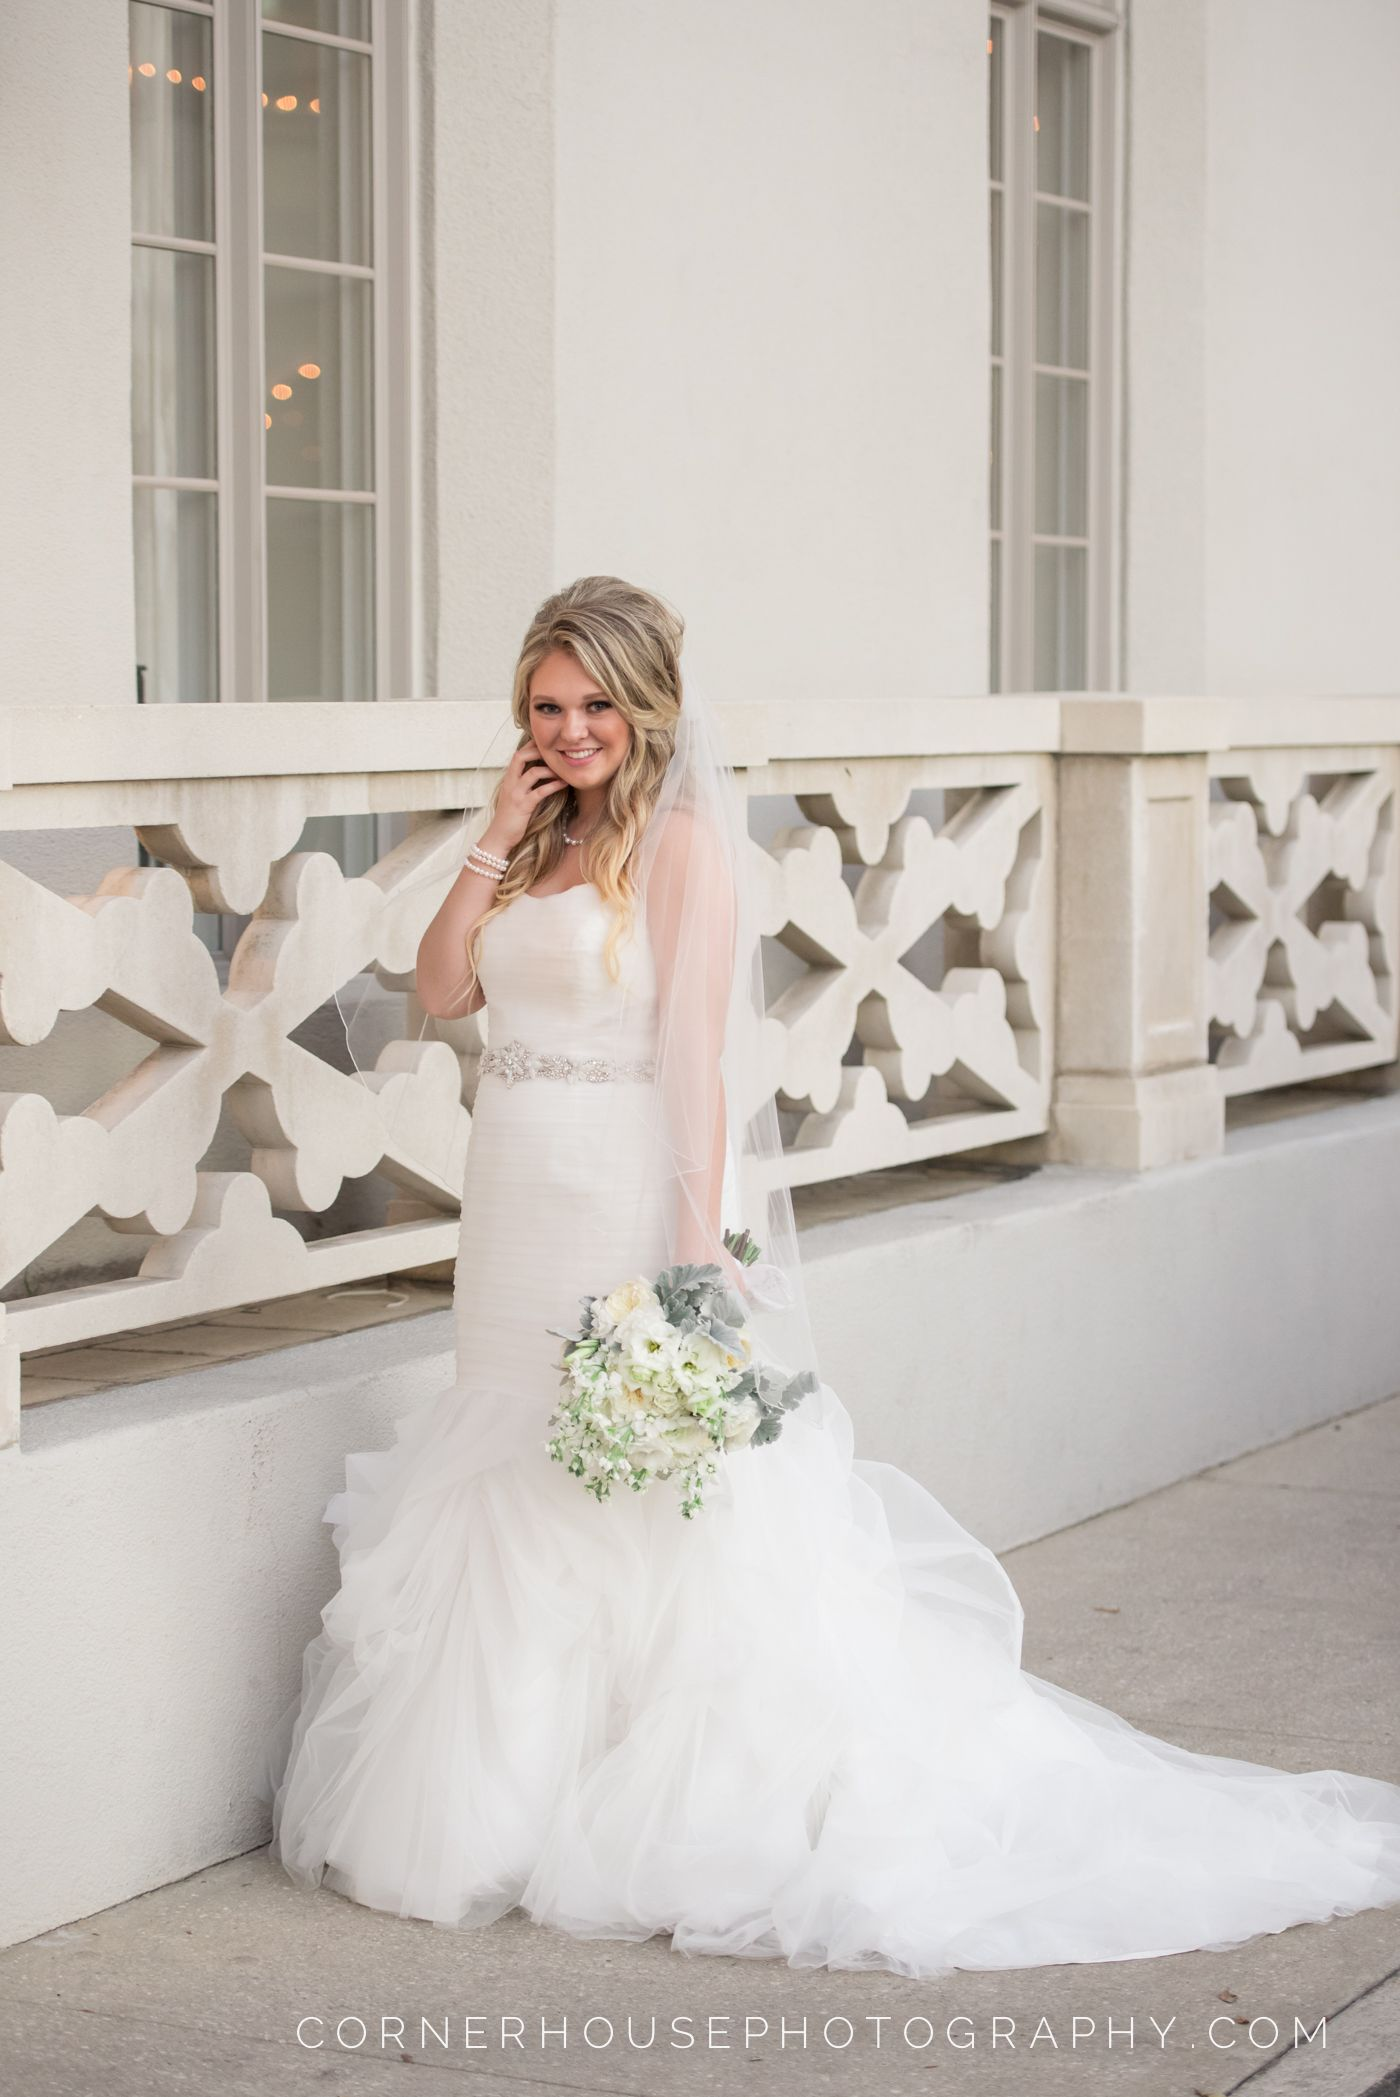 Beautiful St Augustine Bride In Her Wedding Gown Wedding Reception At The Treasury On The Plaza St Augusti Wedding Dresses Wedding Reception Wedding Gowns